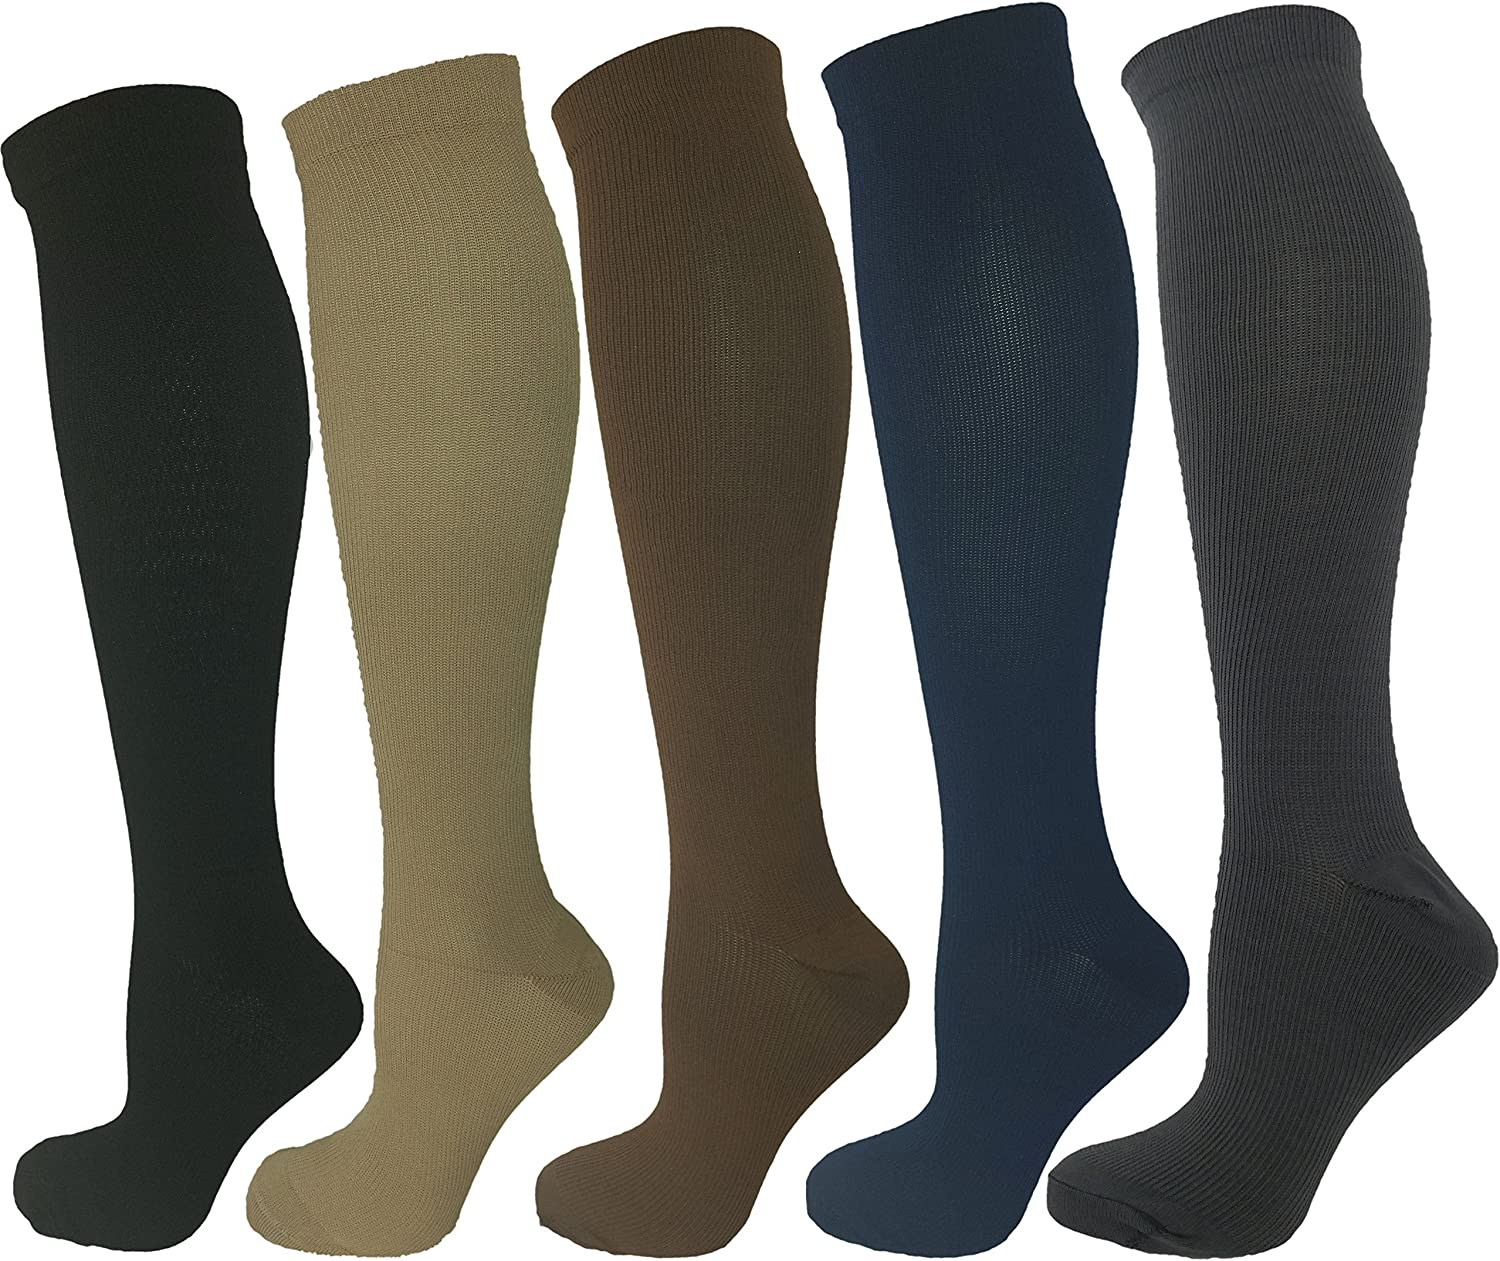 Ladies Compression Socks, Moderate Compression 1520 mmHg.Therapeutic, Occupational, Travel & Flight KneeHigh Socks.5 Pair Assorted colorsBlack, Brown, Grey, Tan and Navy blueee, Large Extra Large